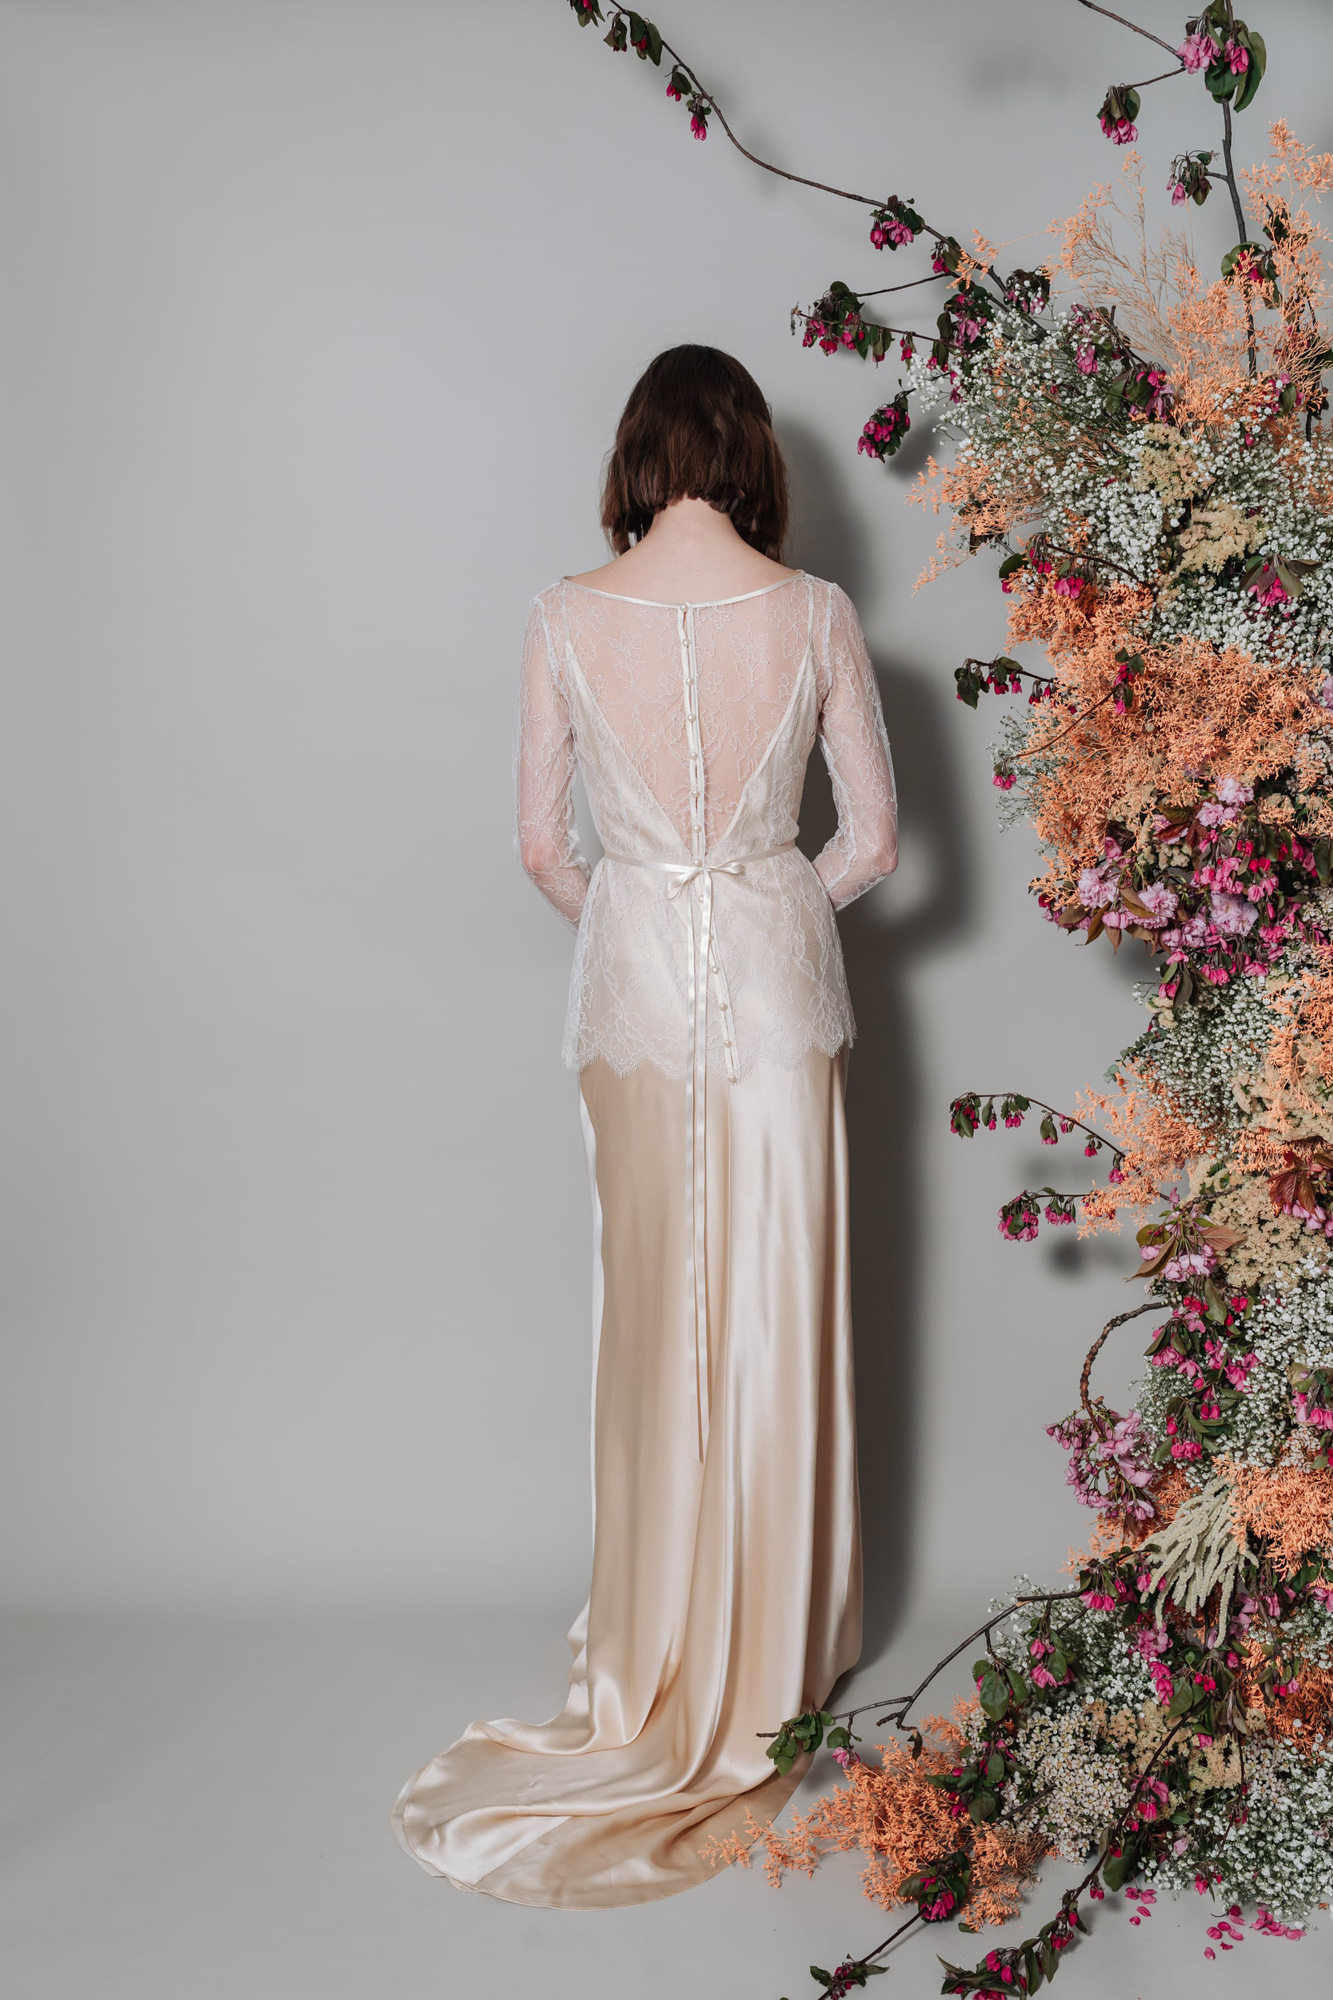 Kate-Beaumont-Sheffield-Thistle-Bridal-Separates-Two-Piece-Lace-Silk-Wedding-Gown-10.jpg